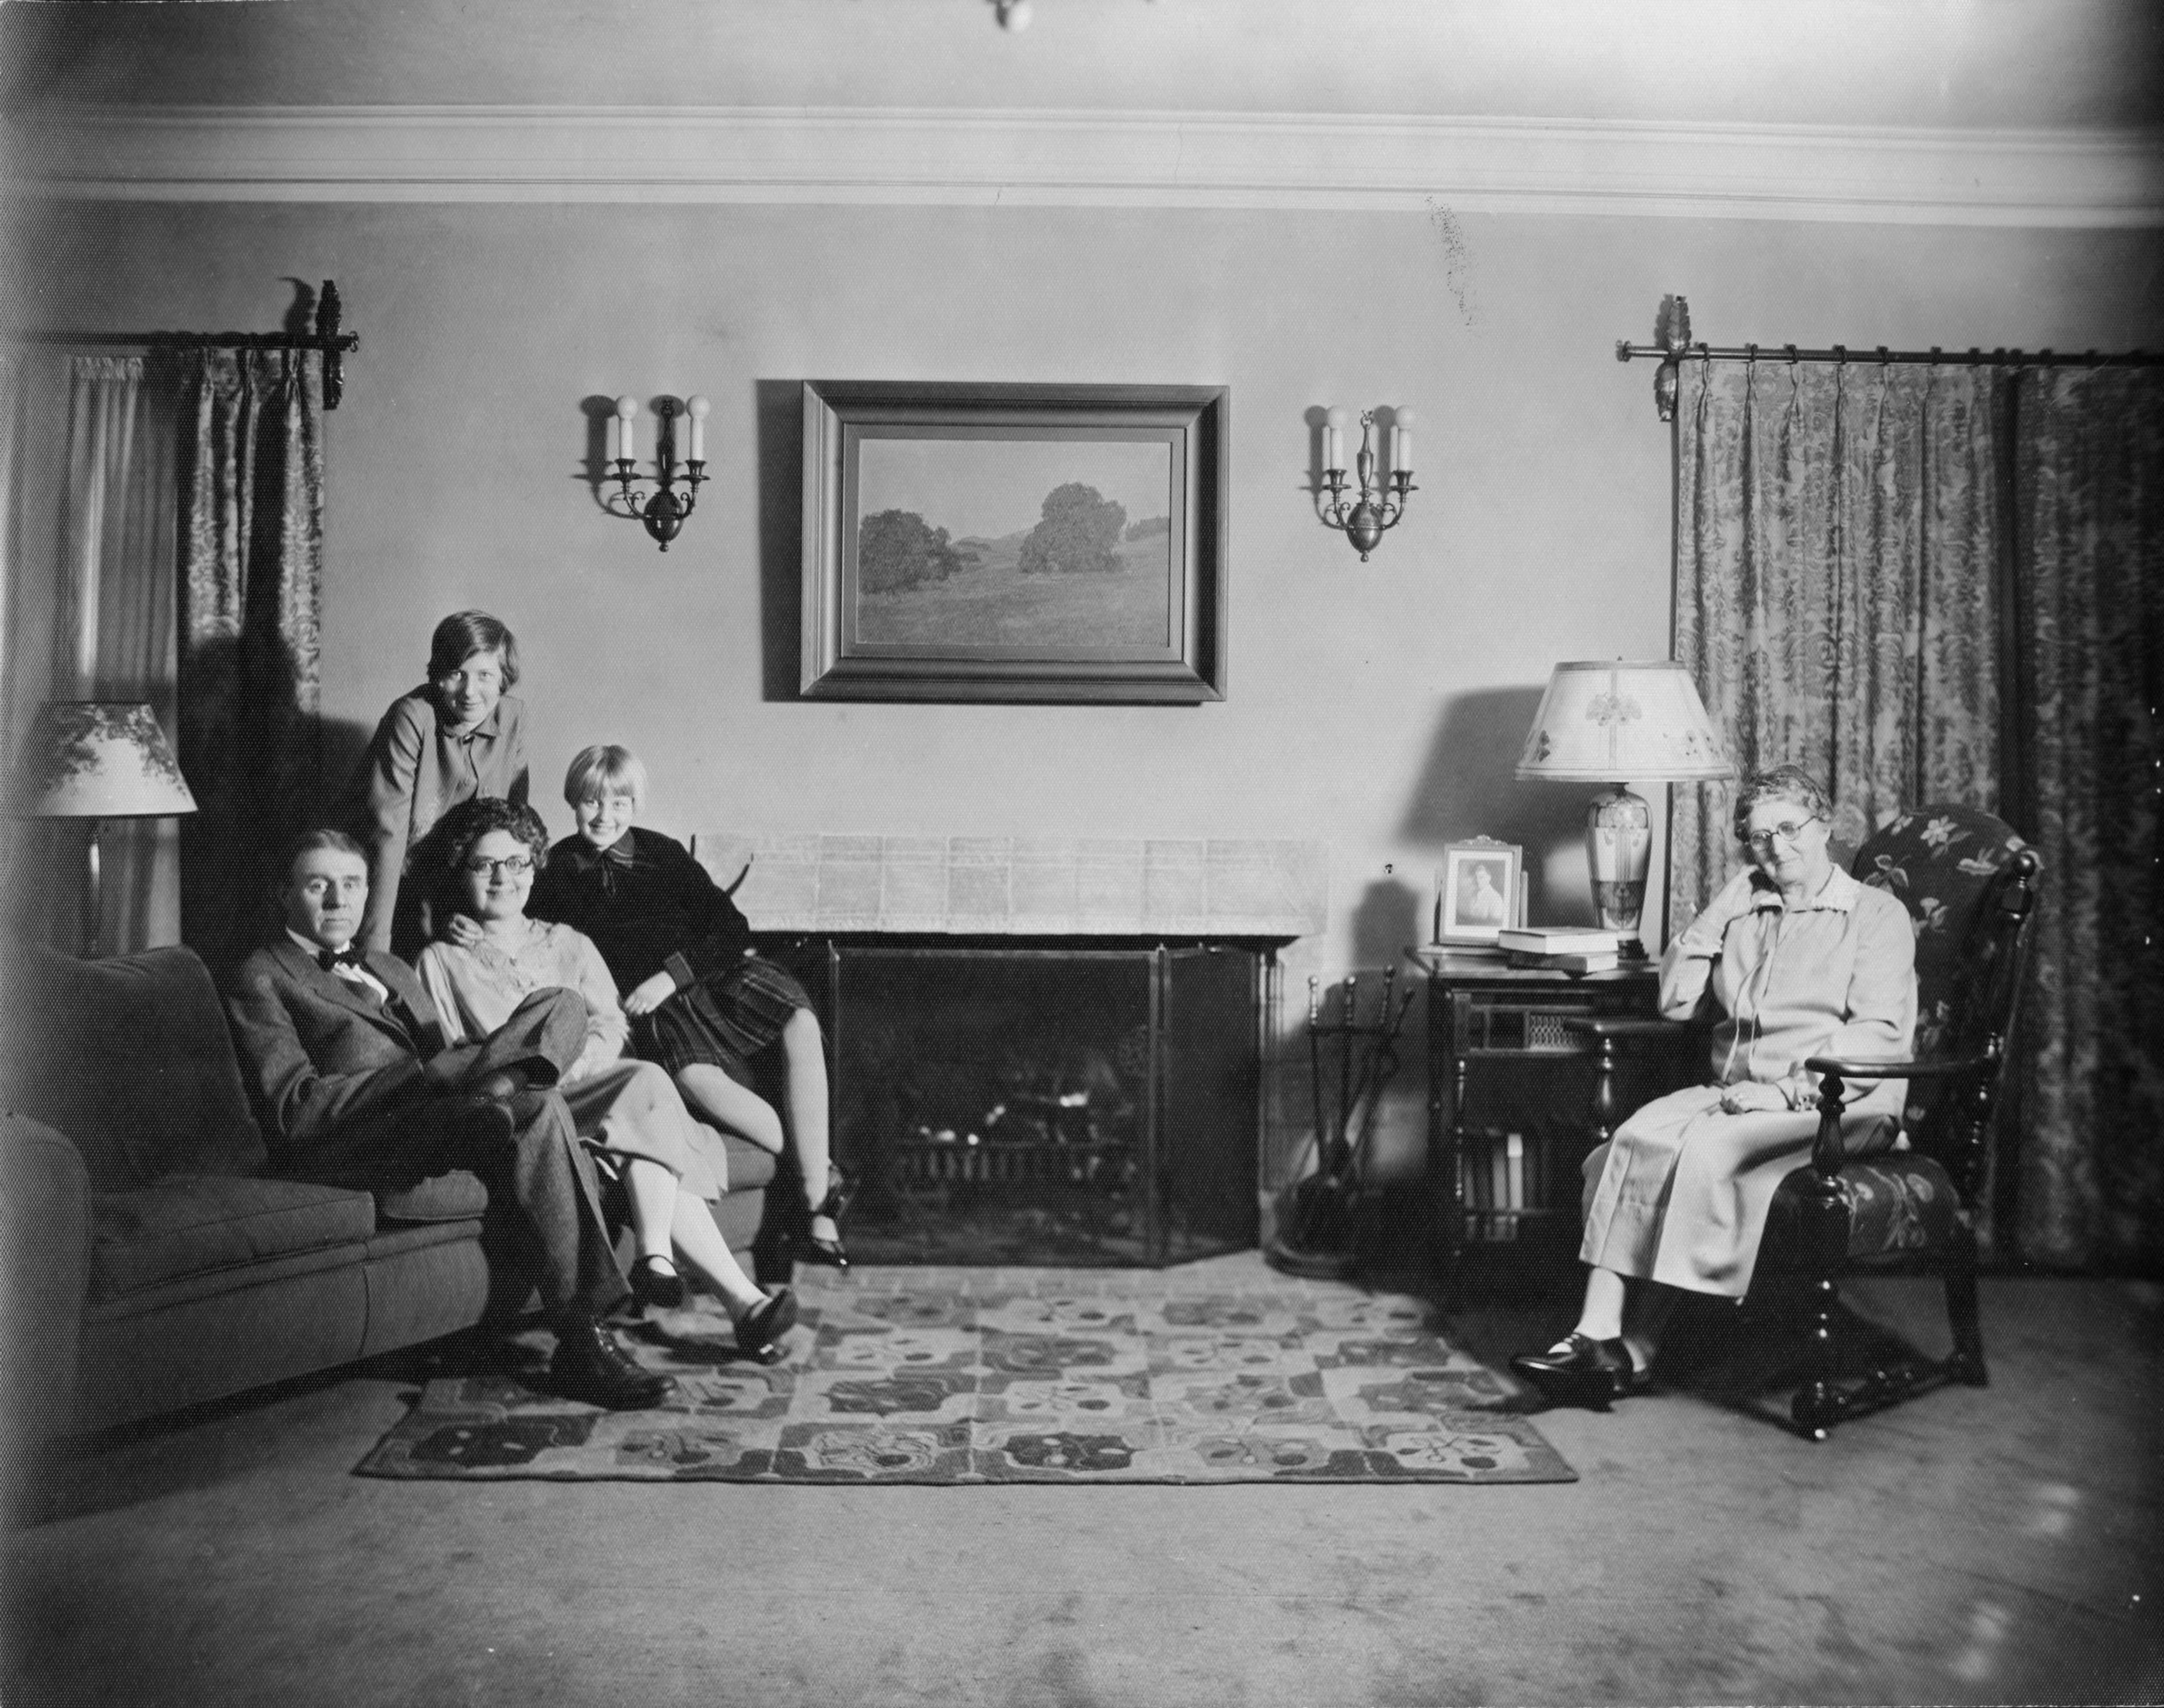 Claude Lewis family in living room, 1930s